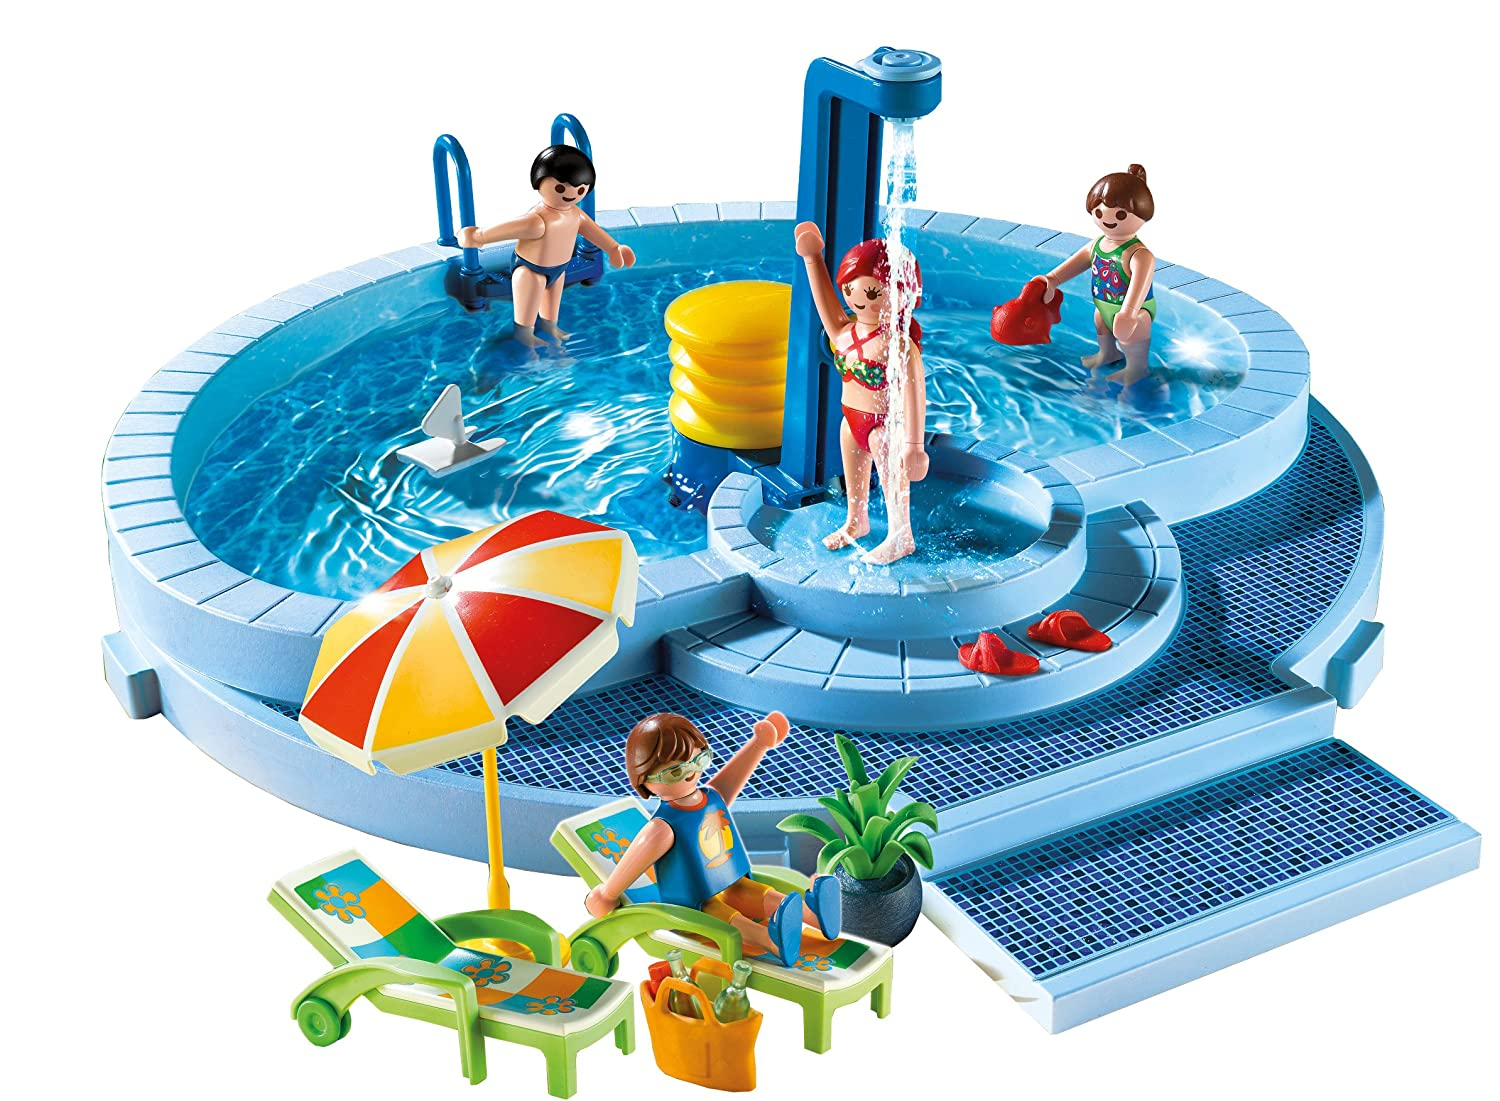 playmobil 5964 summer swimming pool great gift ebay